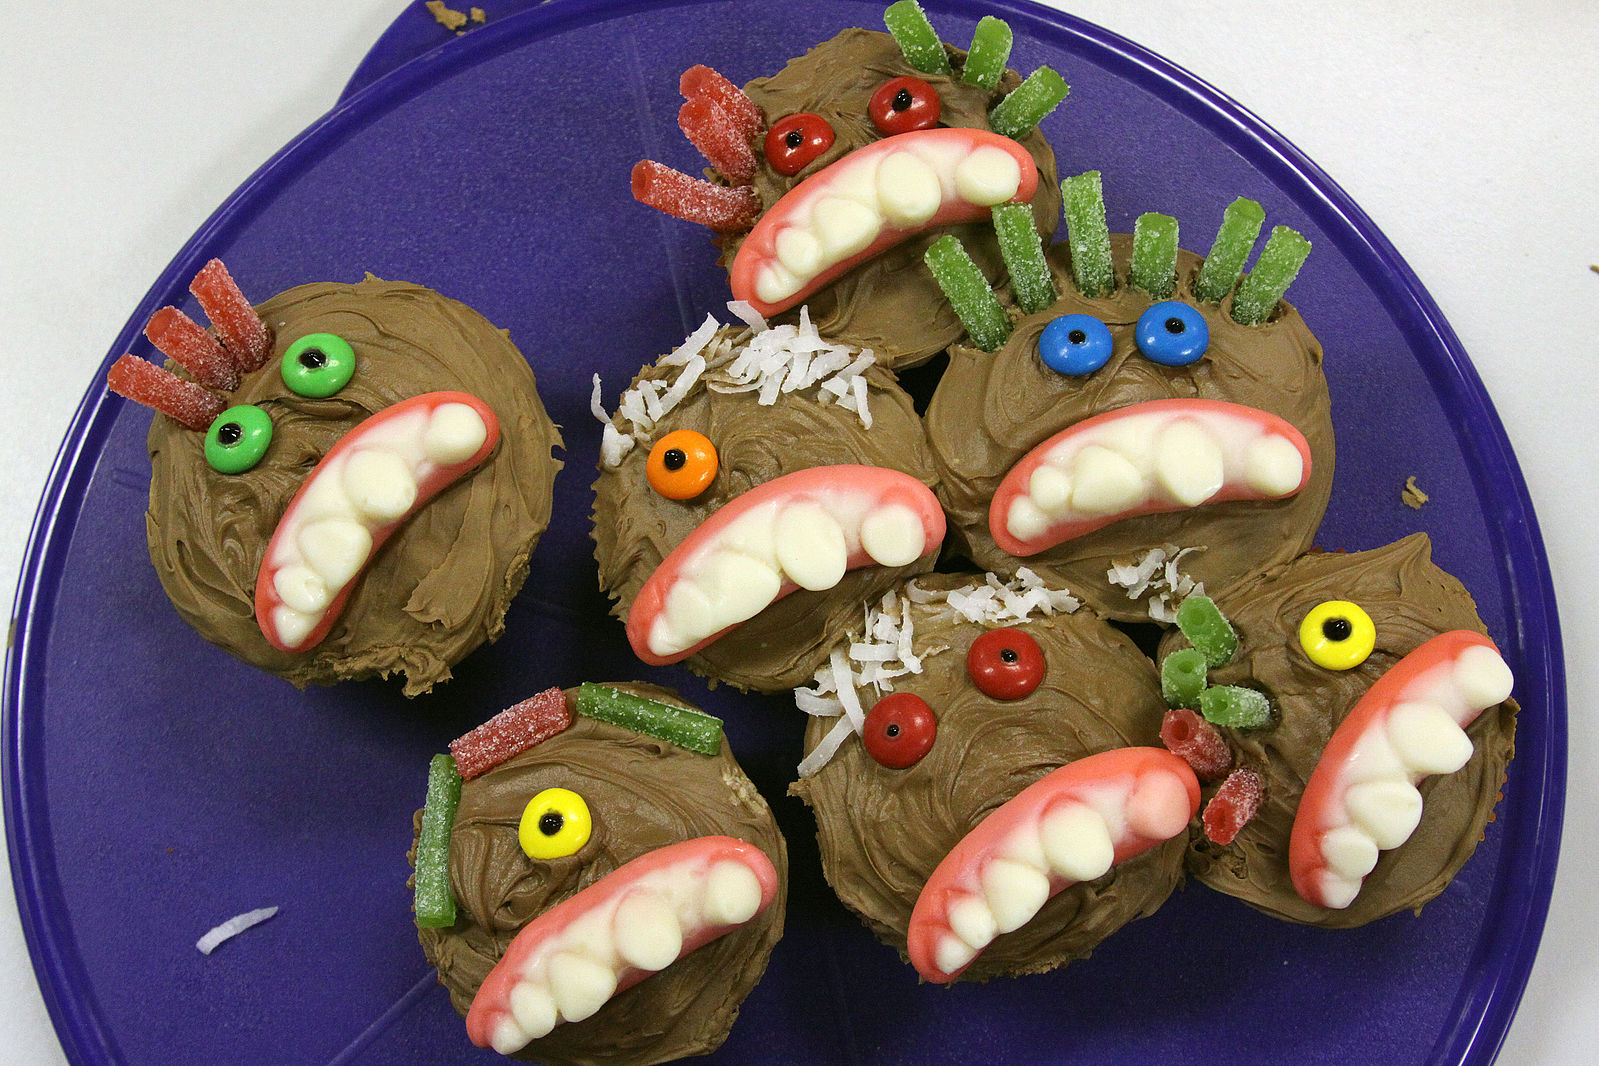 Halloween Crafts for Kids: Monster cupcakes